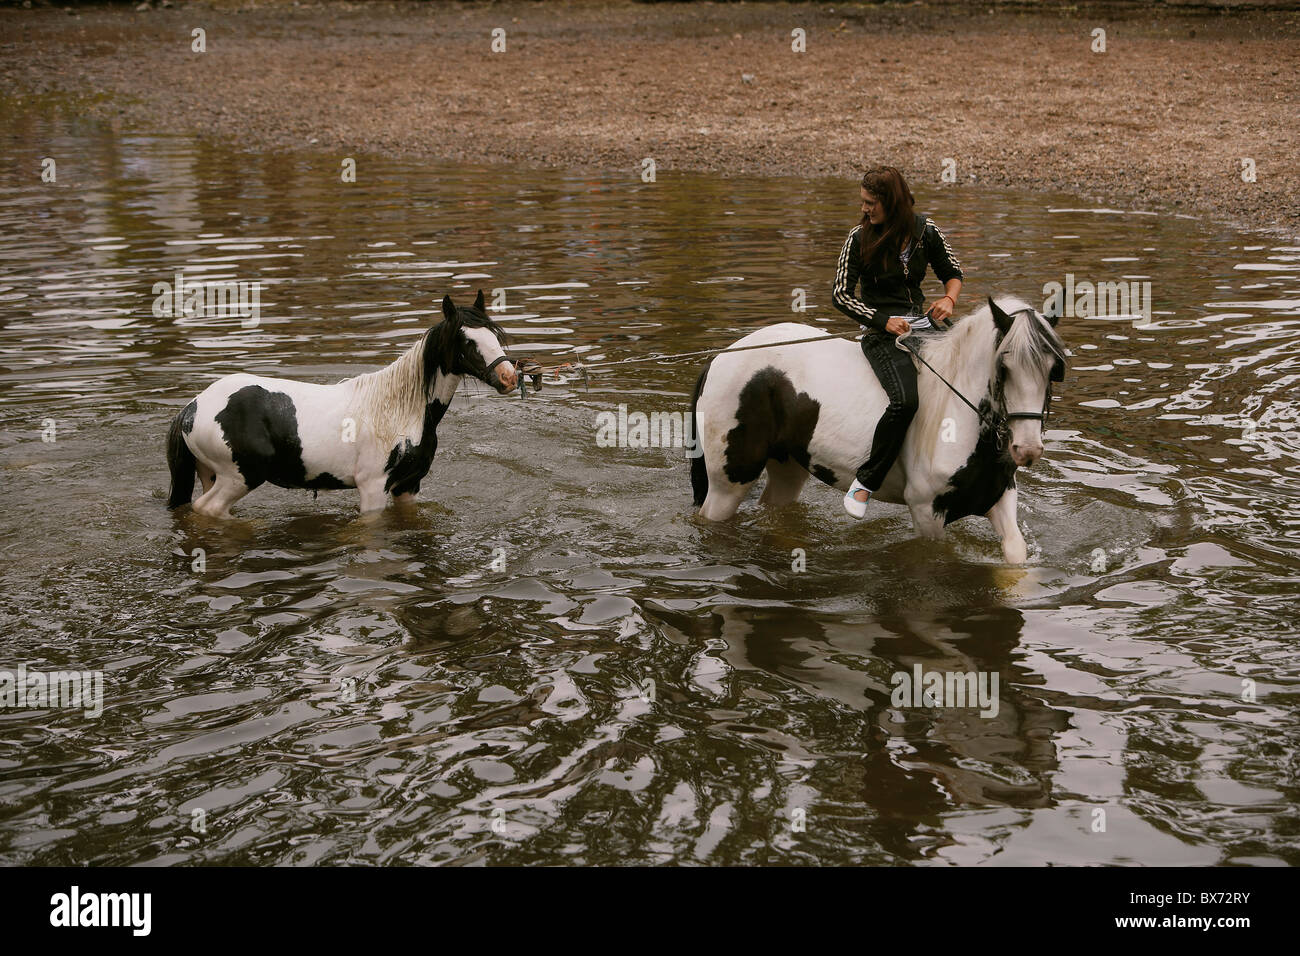 Gypsy travellers riding and washing horses in the river Eden during the Appleby Horse Fair, Appleby-in-Westmorland, - Stock Image